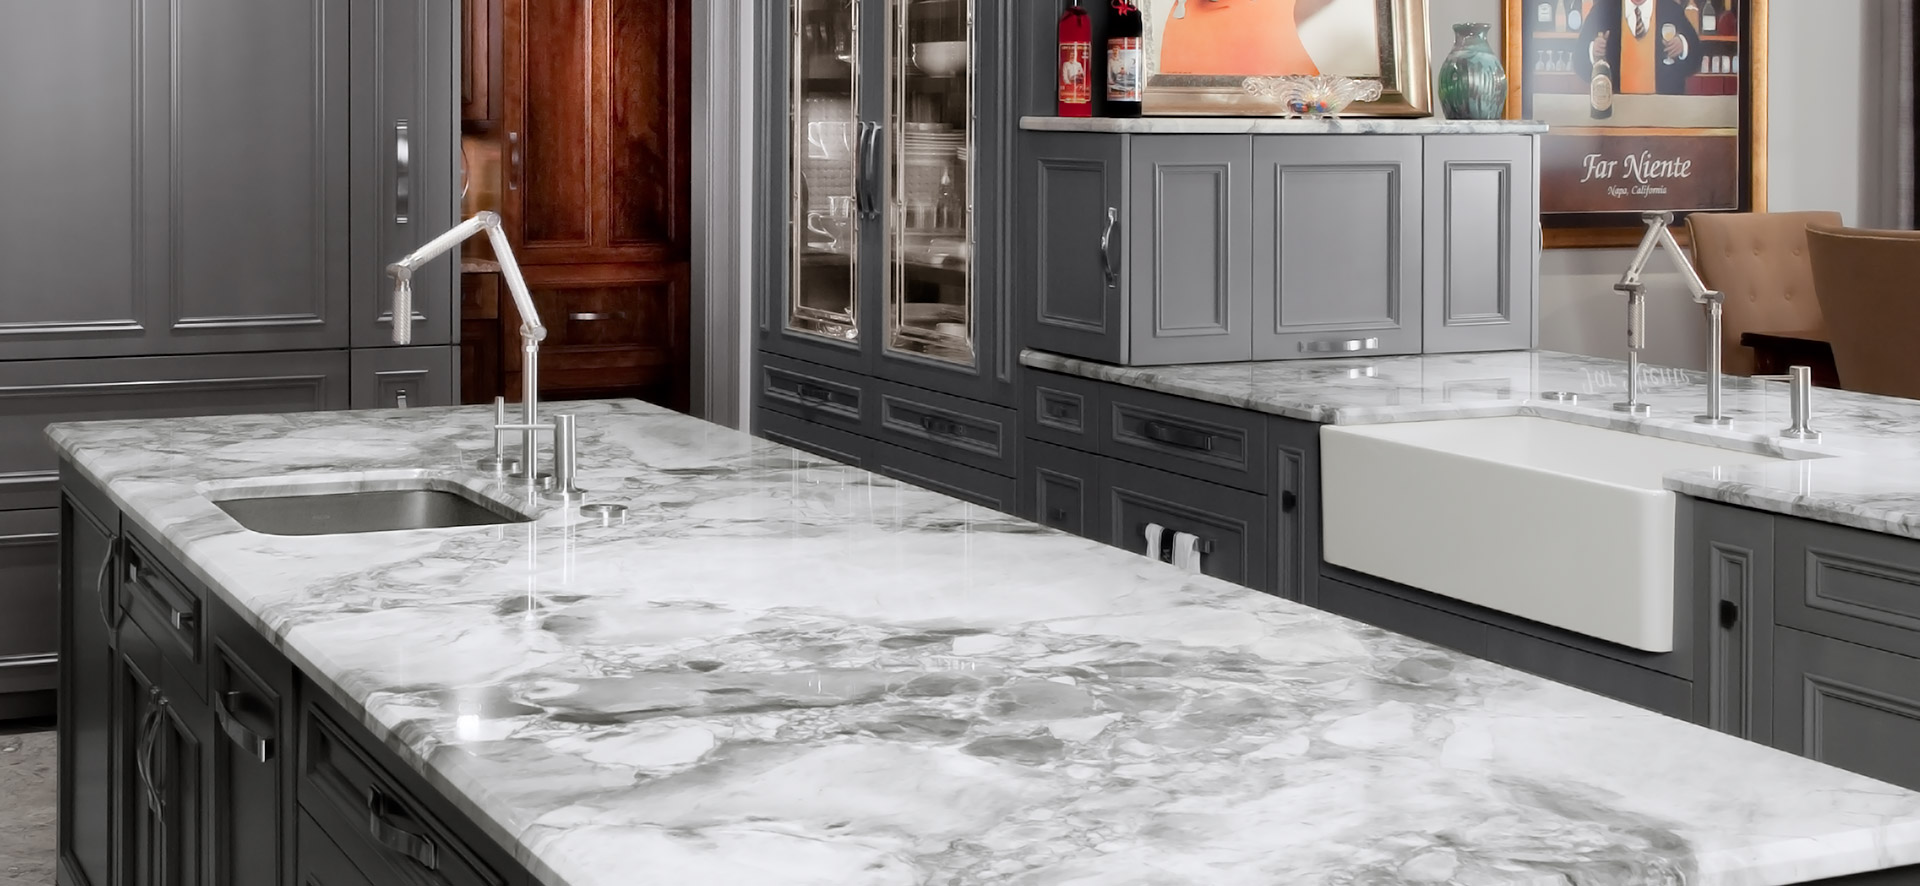 Image of marble countertops in contemporary kitchen